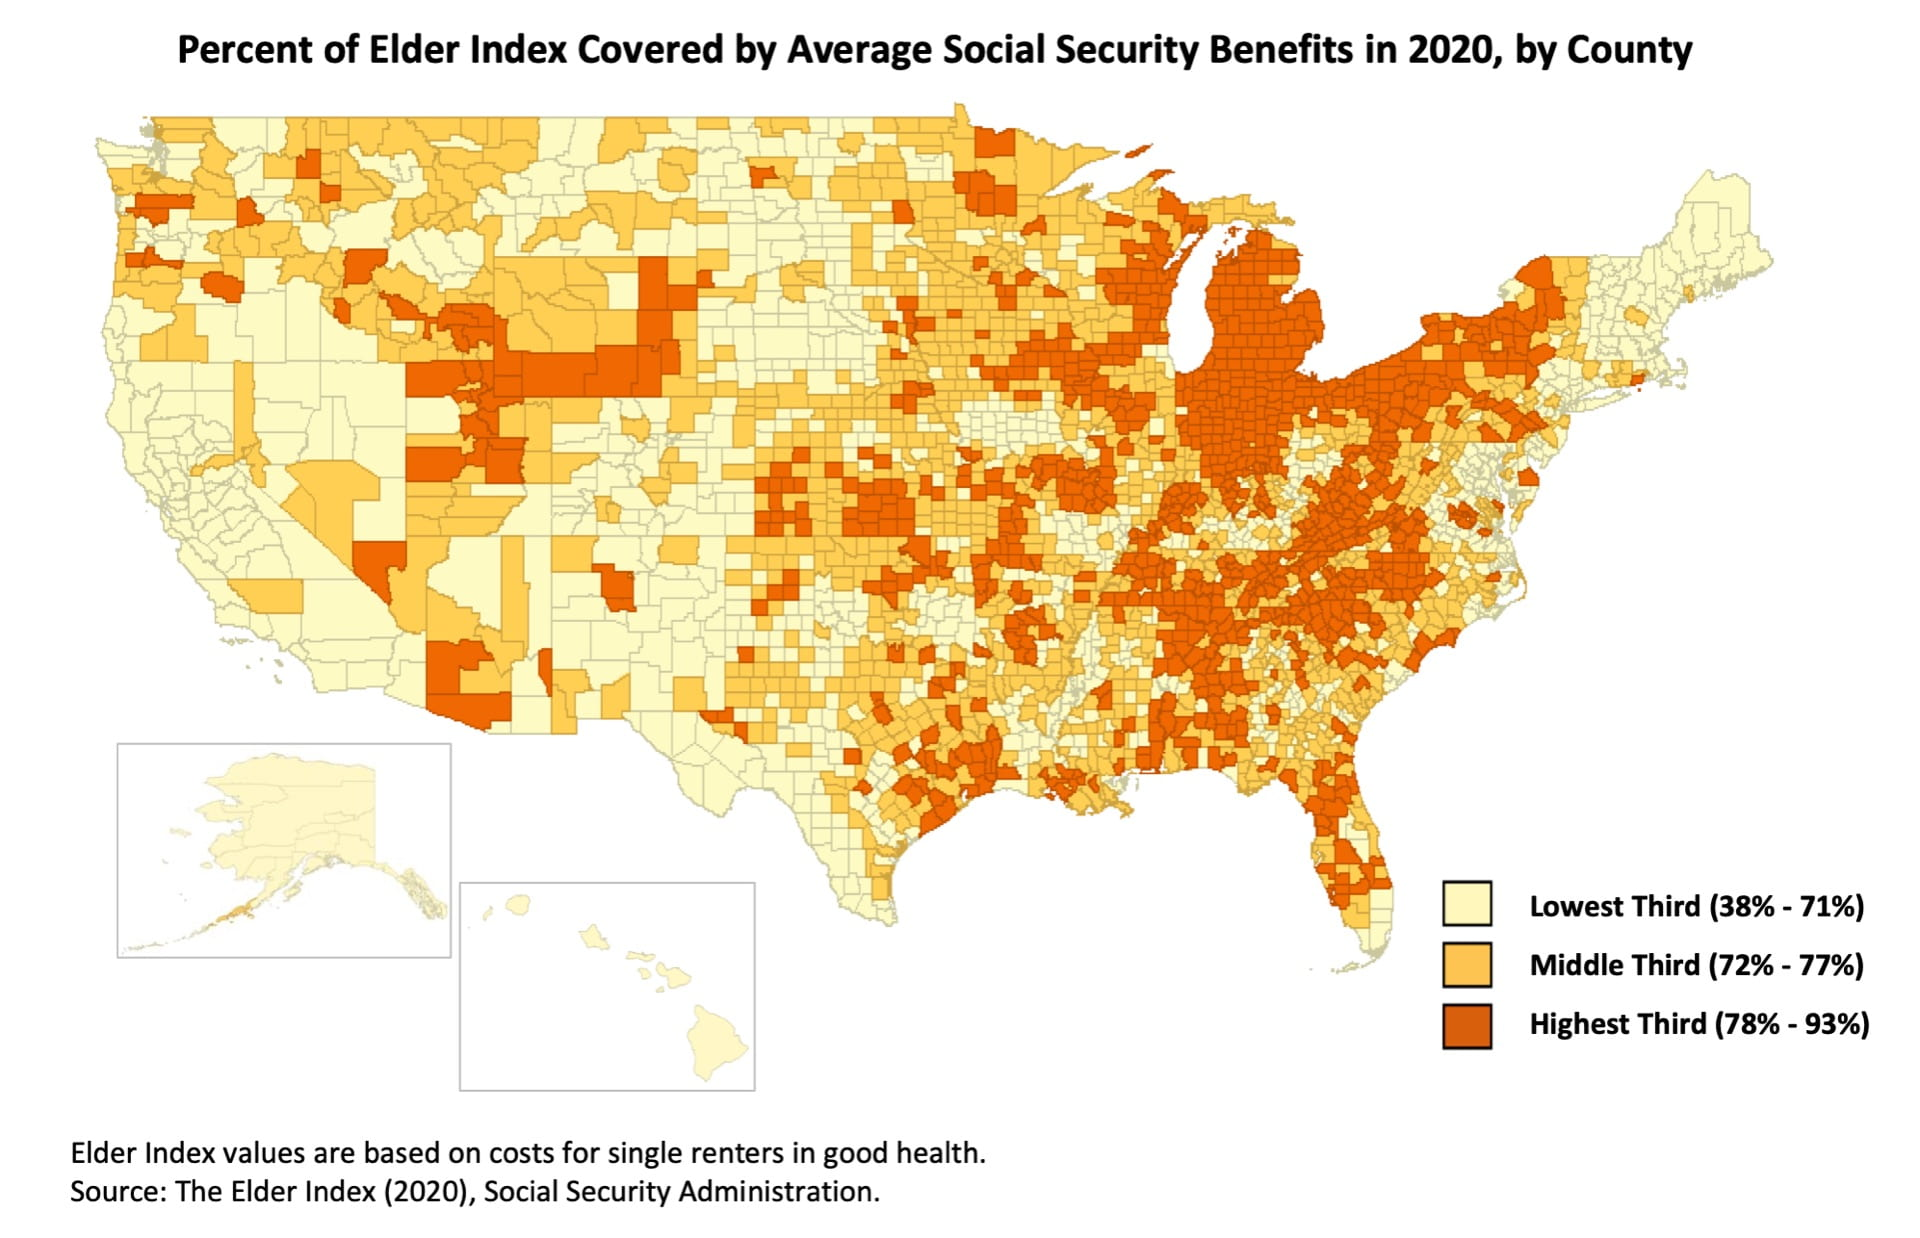 Social Security coverage map